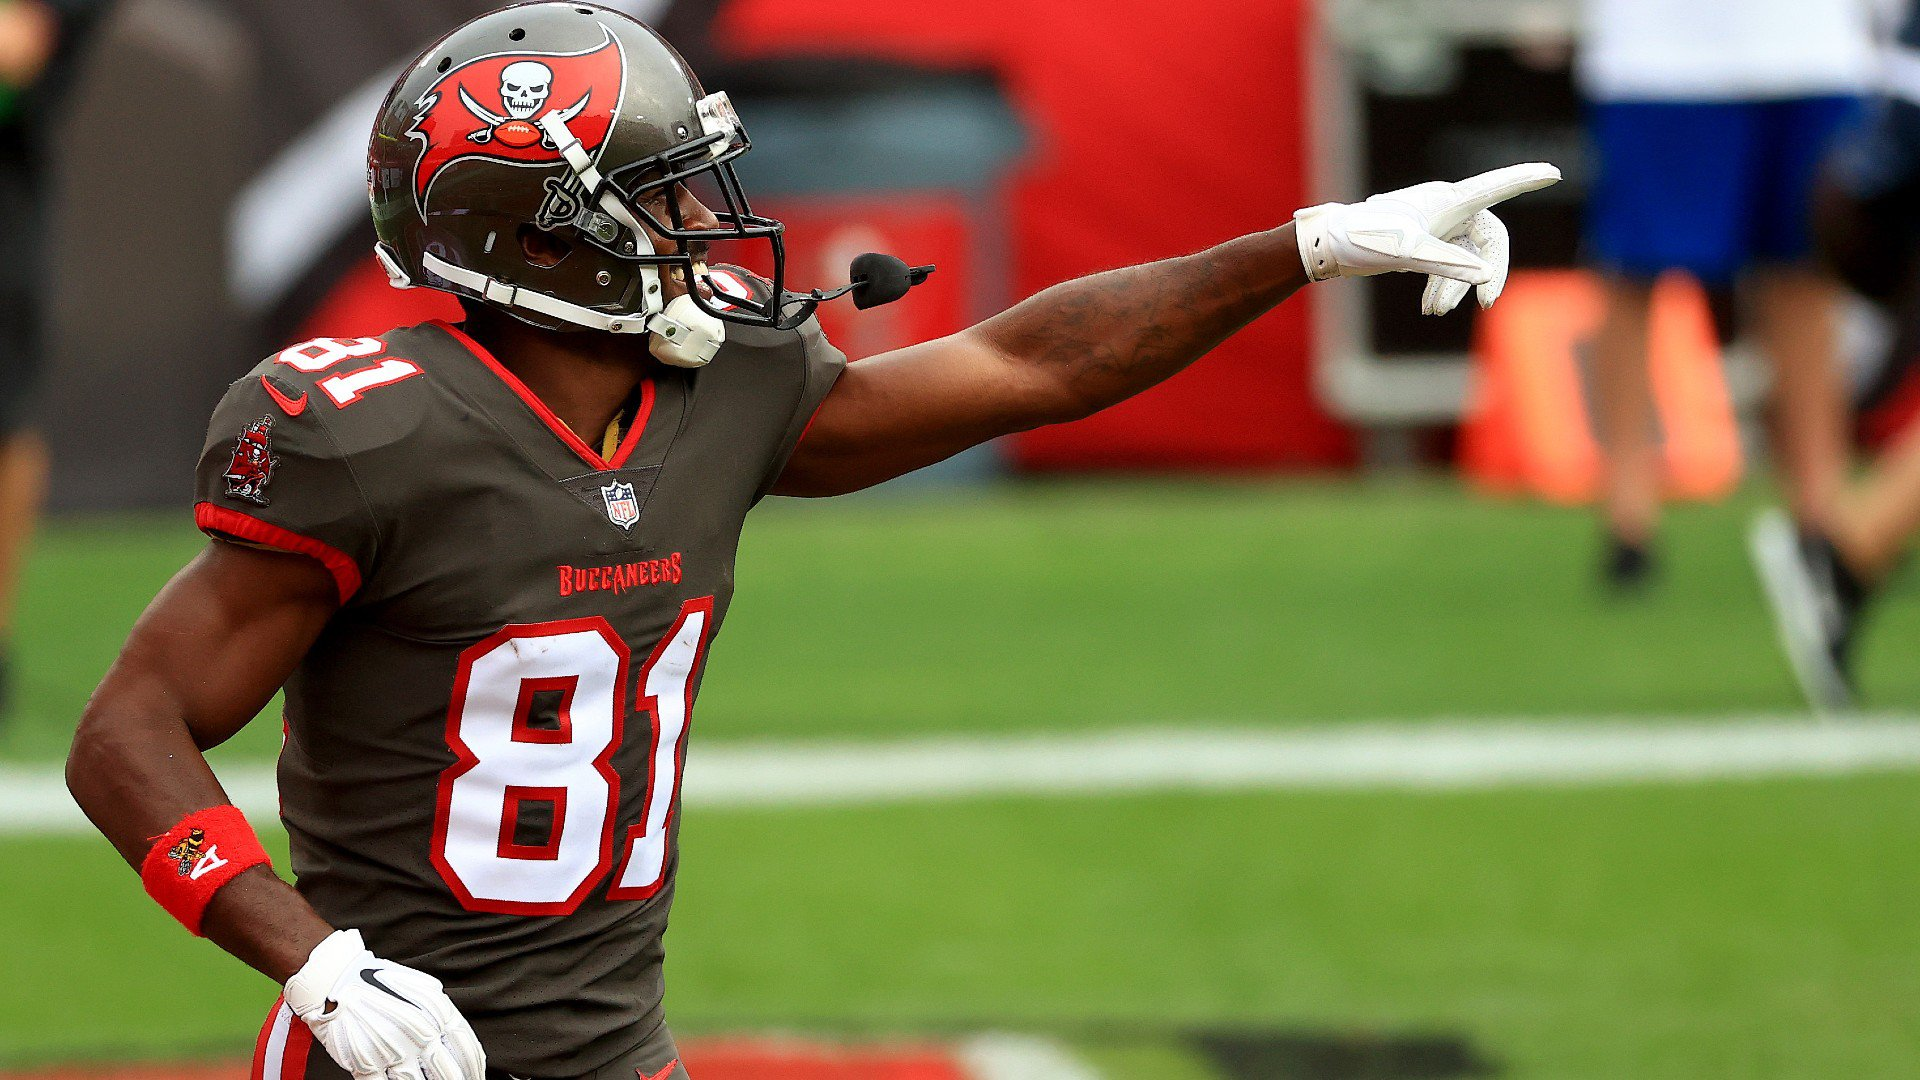 Antonio Brown Odds: Where Will the Controversial Receiver Sign?